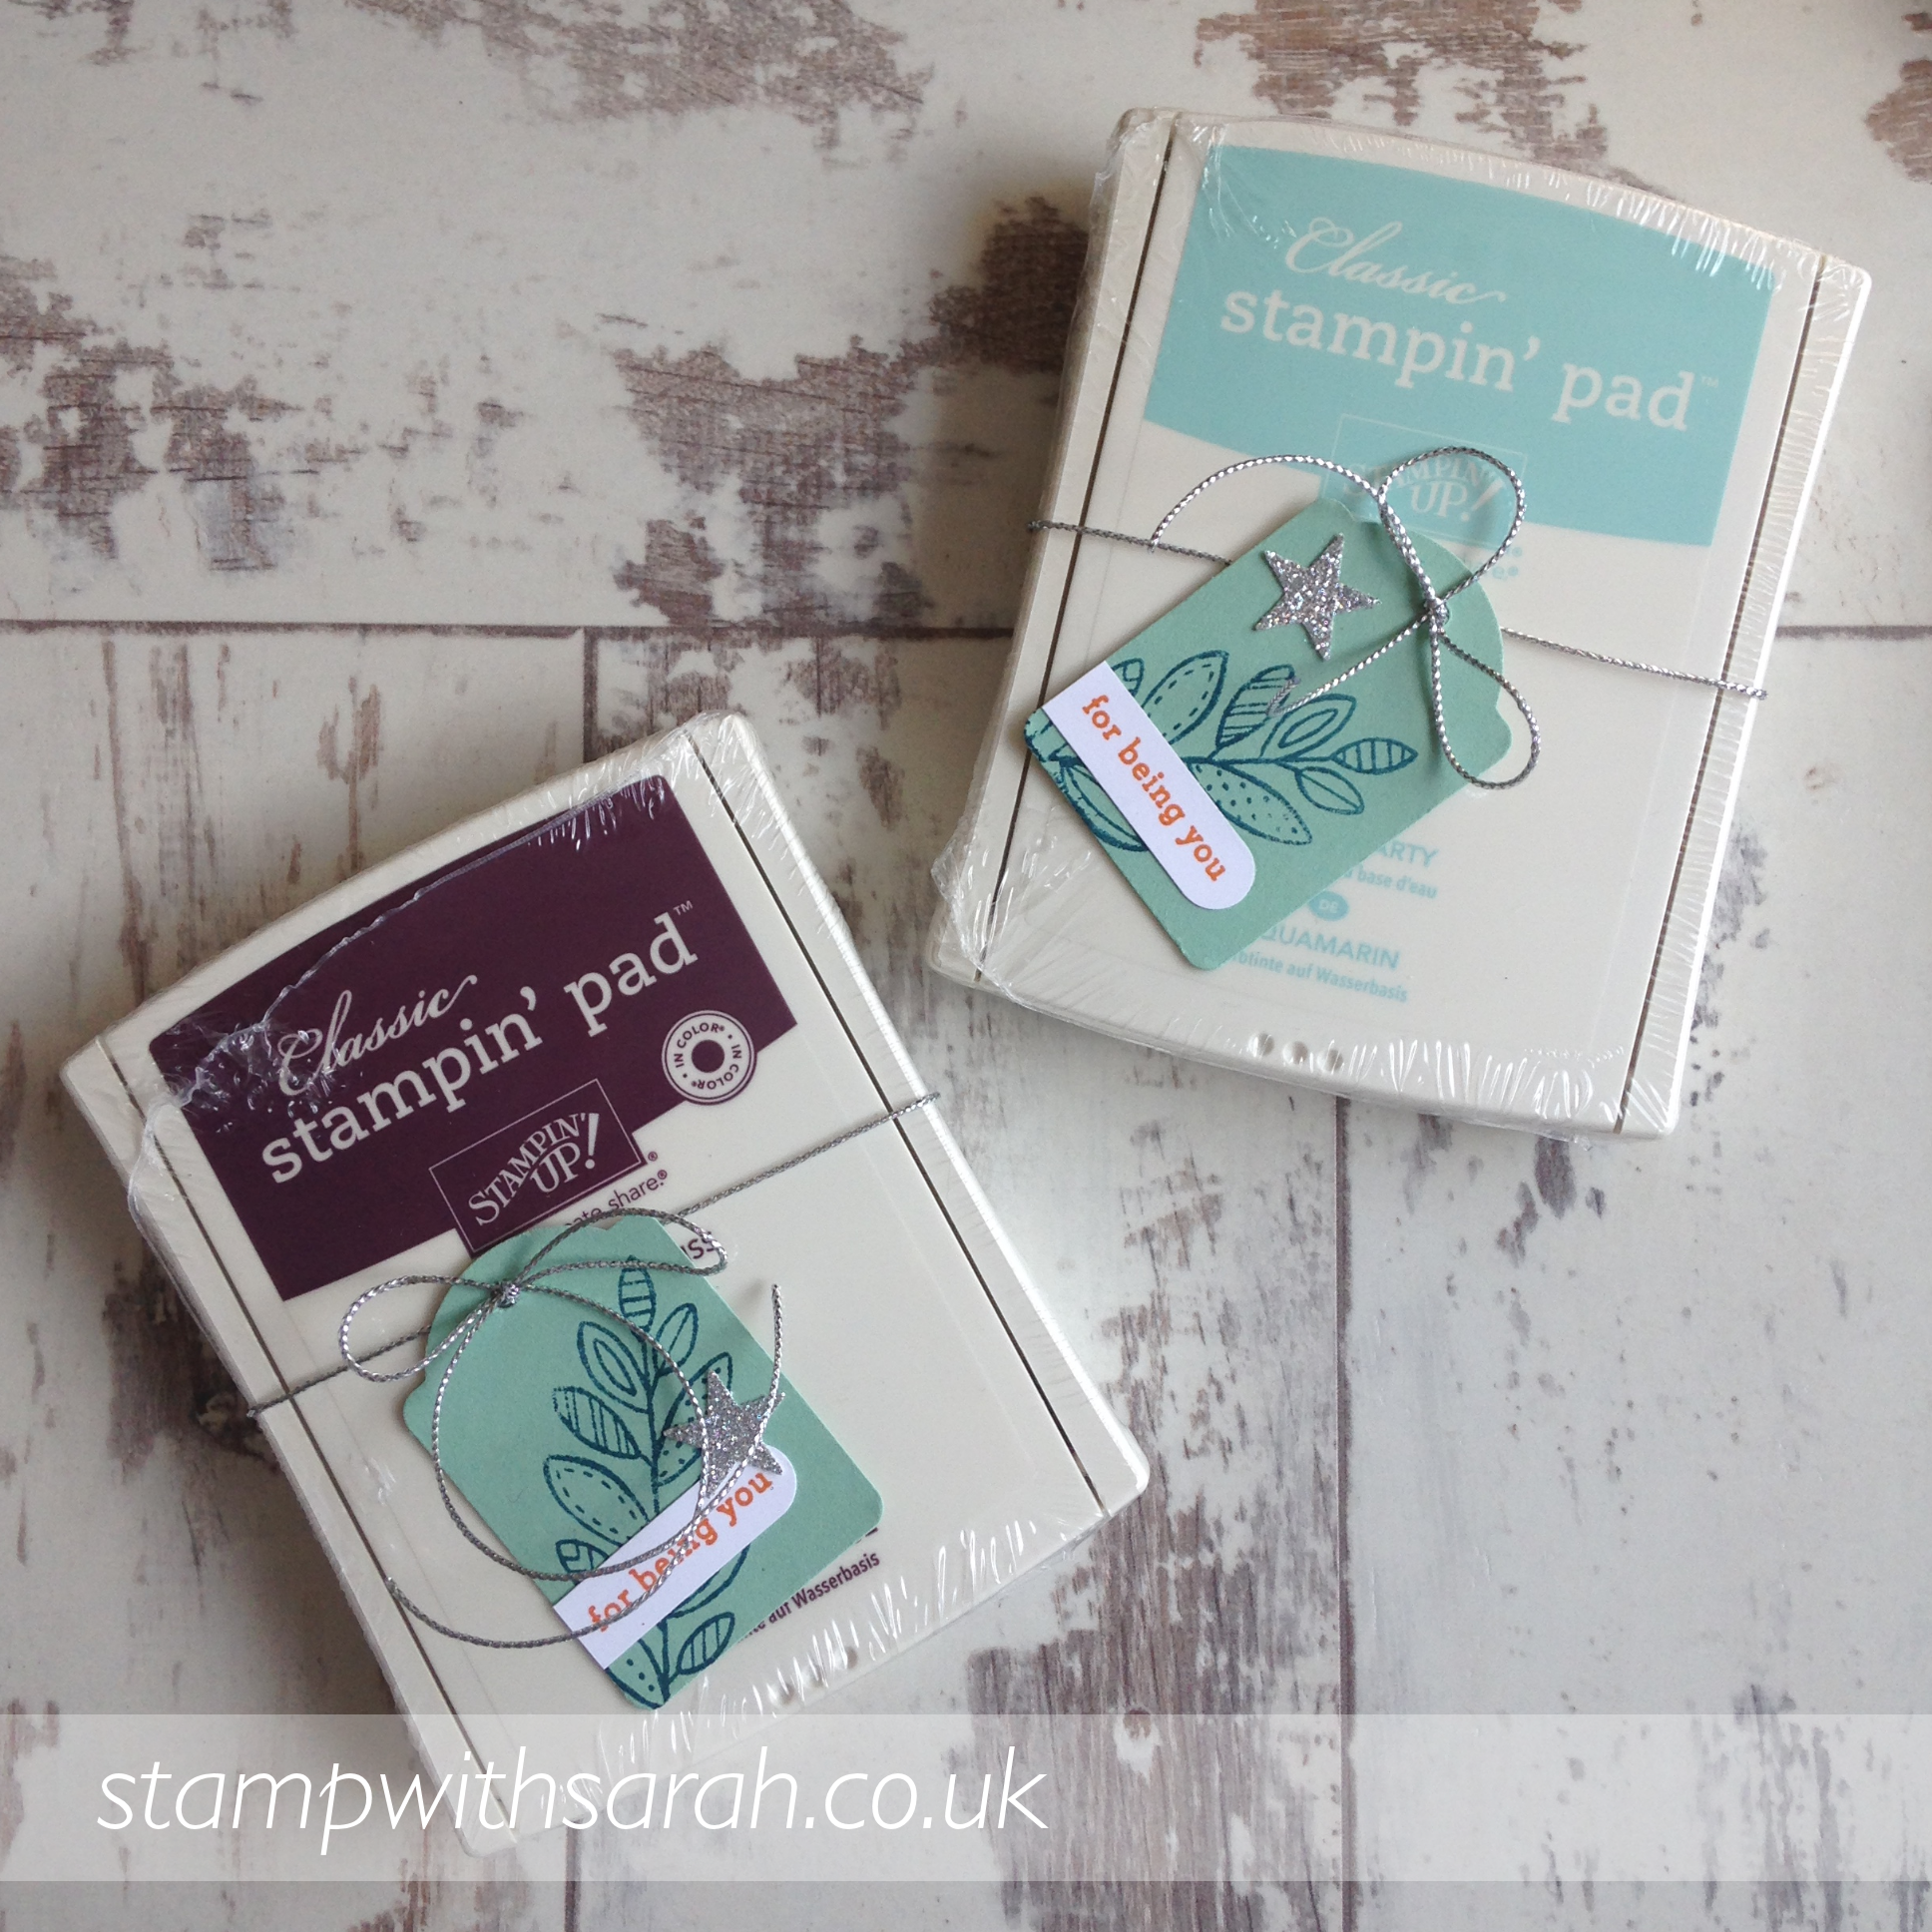 Gifts for the Strawberry Stampers